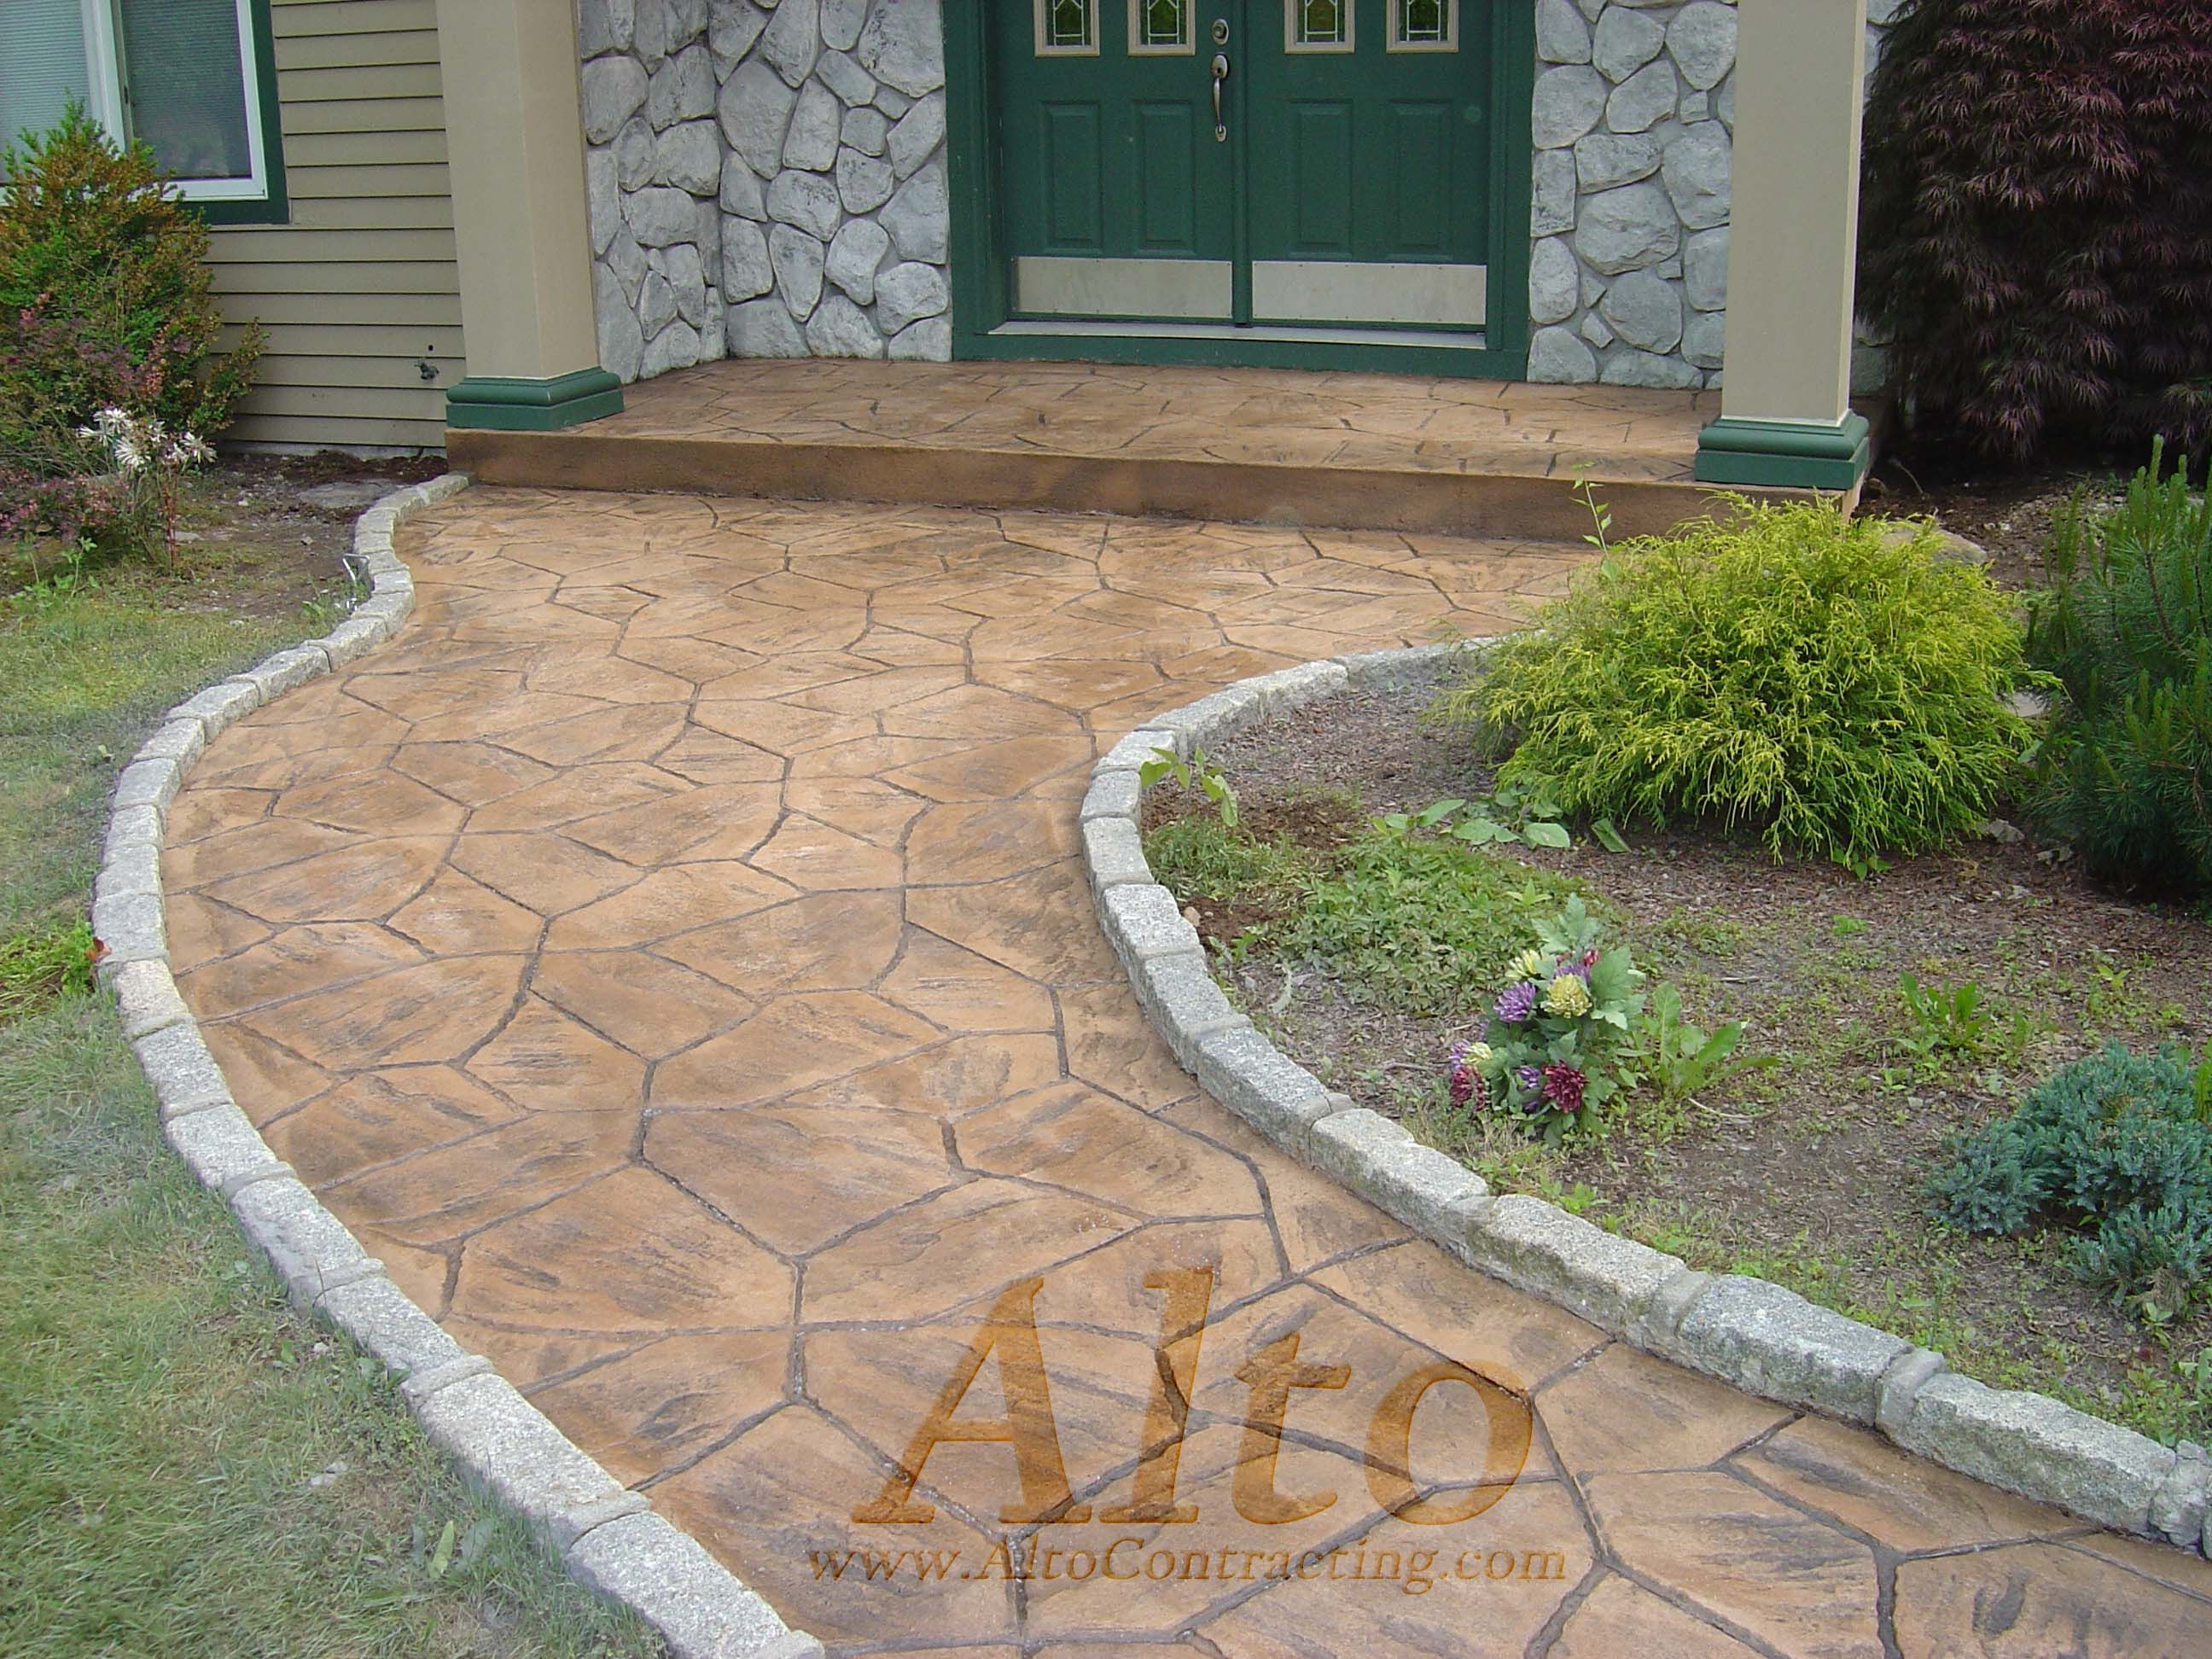 Stamped concrete walkway with cobblestone curbing.